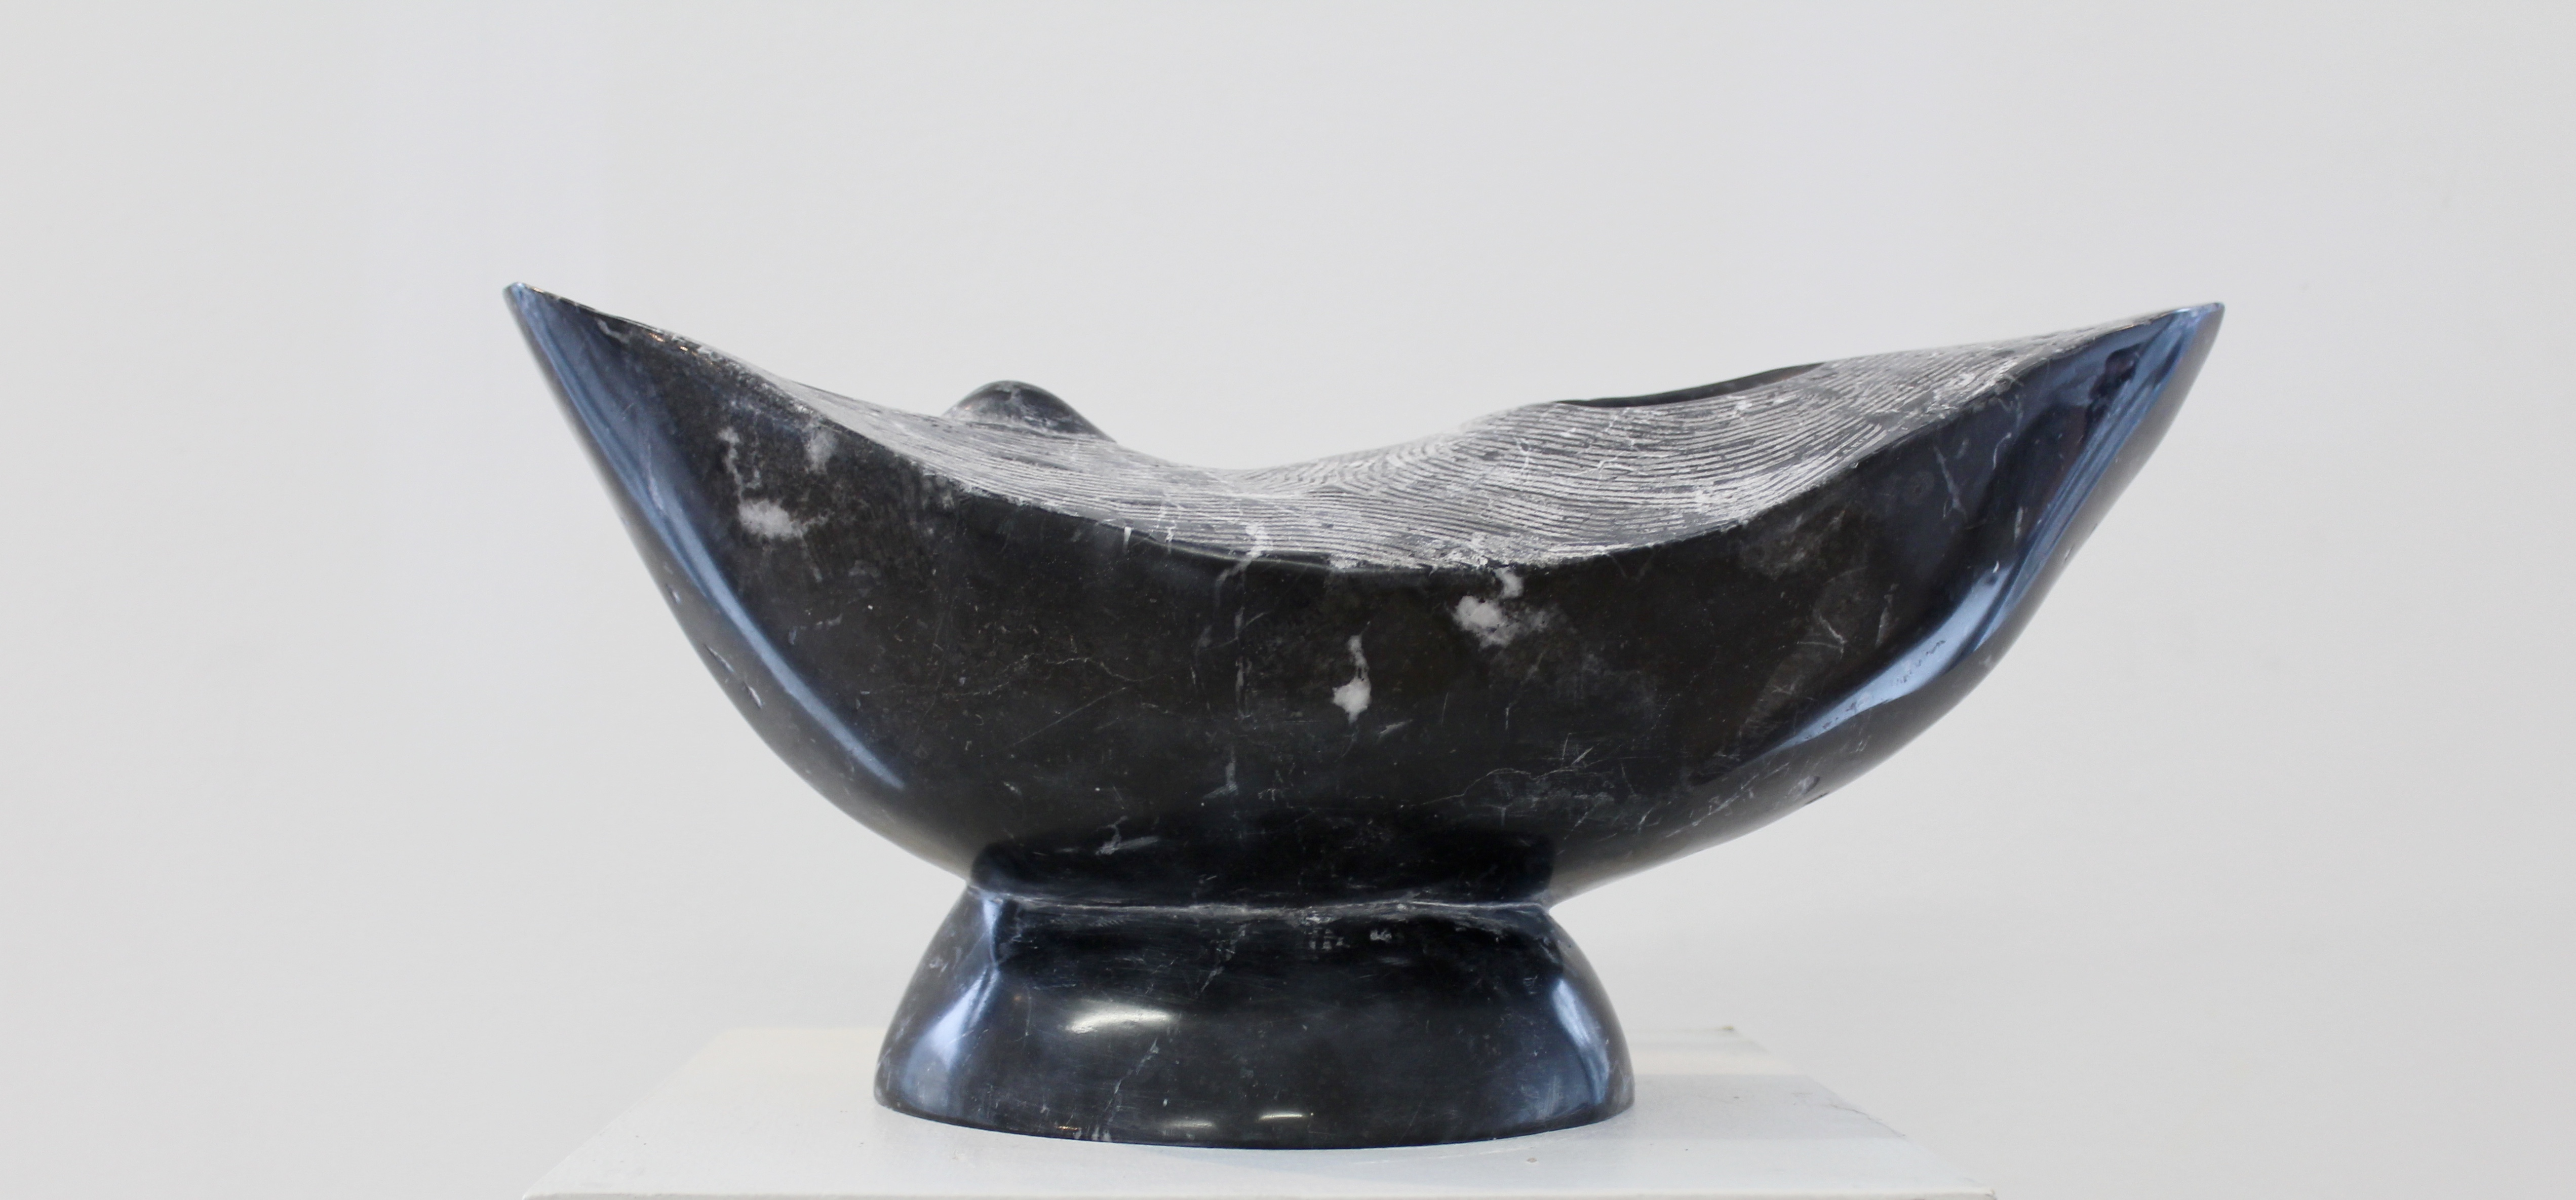 exhibiton, art, hong kong art exhibition, art collector, hong kong art fair, hong kong art central, Marble sculpture, black marble, sculpture